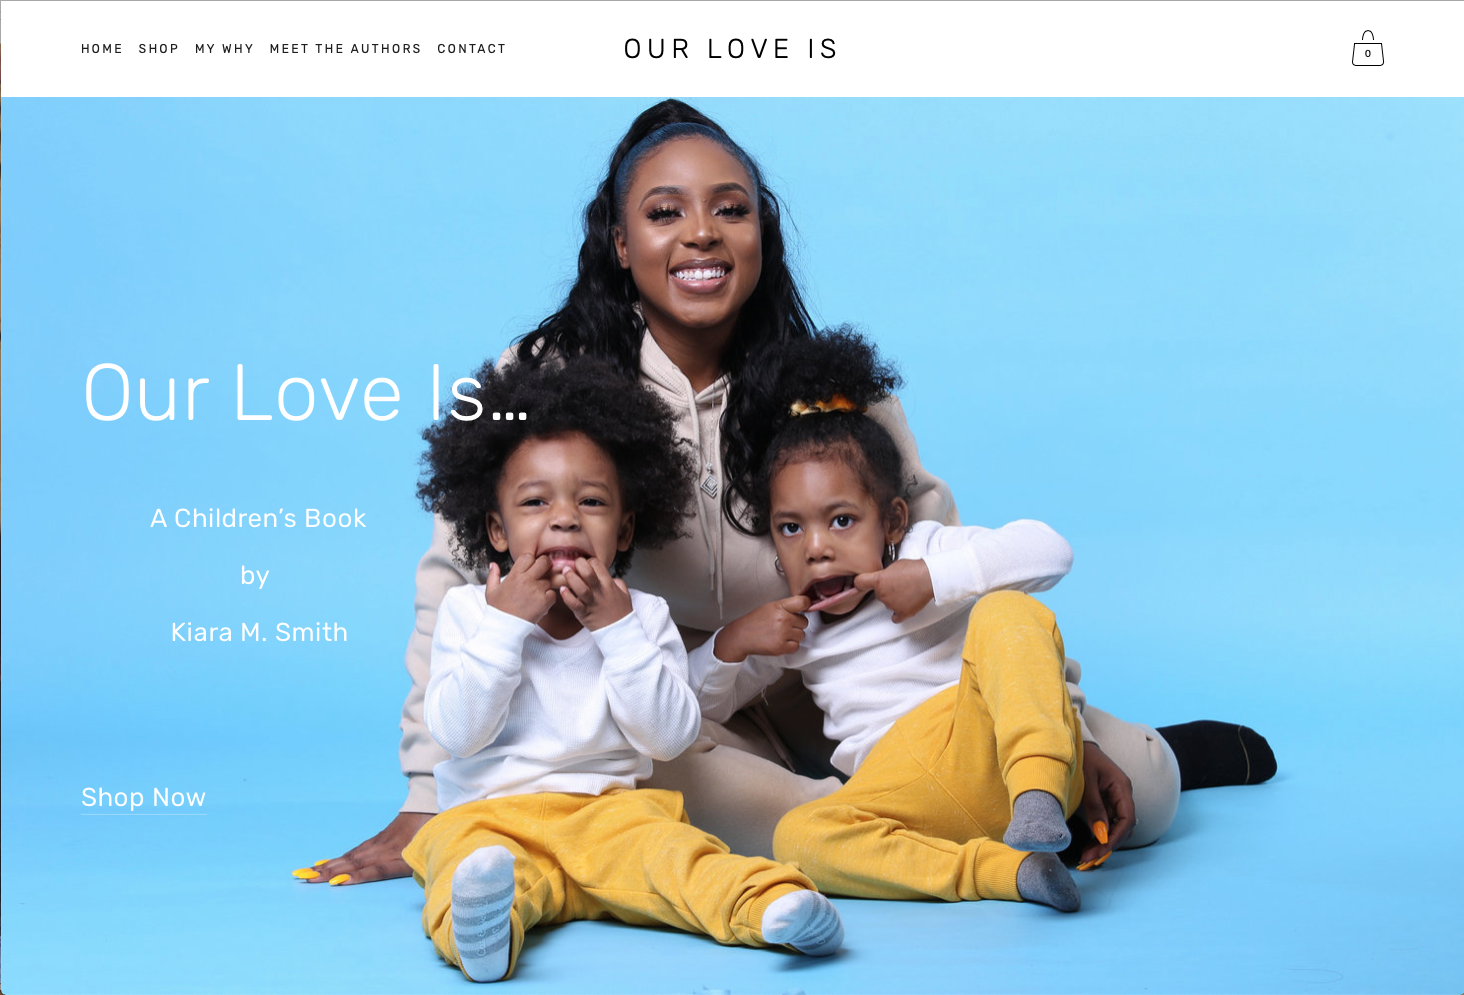 Our Love Is…   Website Design and Copywriting Services by Iman